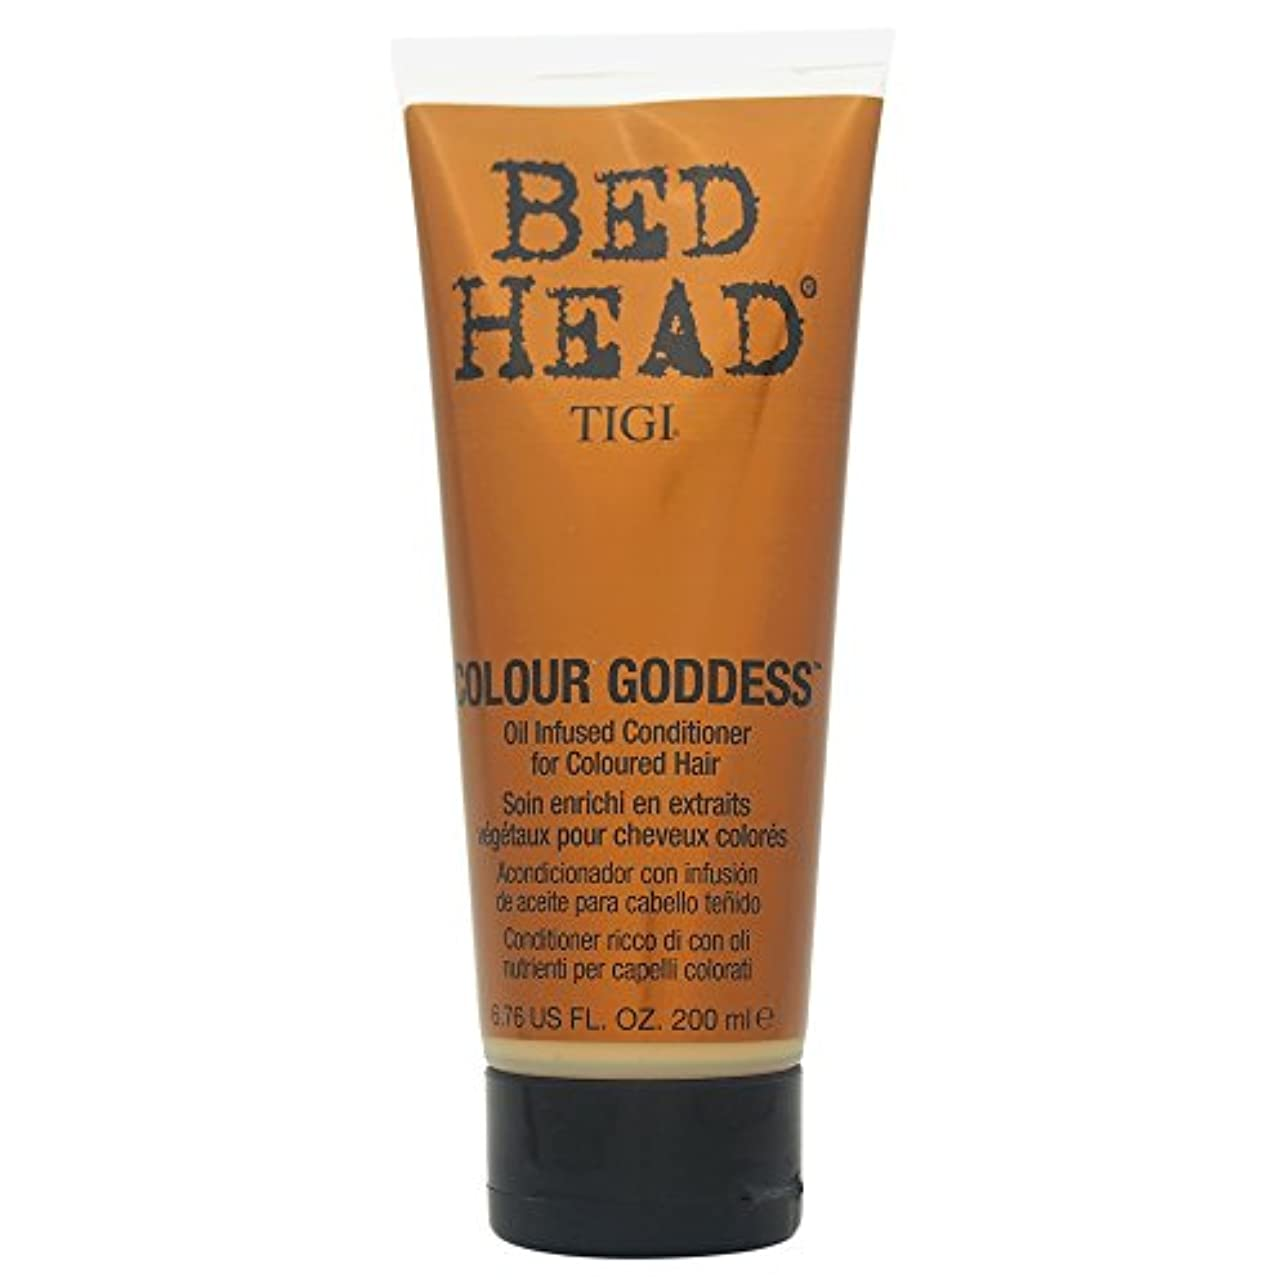 チューインガム鼻レザーTigi Bed Head Colour Goddess Oil Infused Conditioner 200ml [並行輸入品]